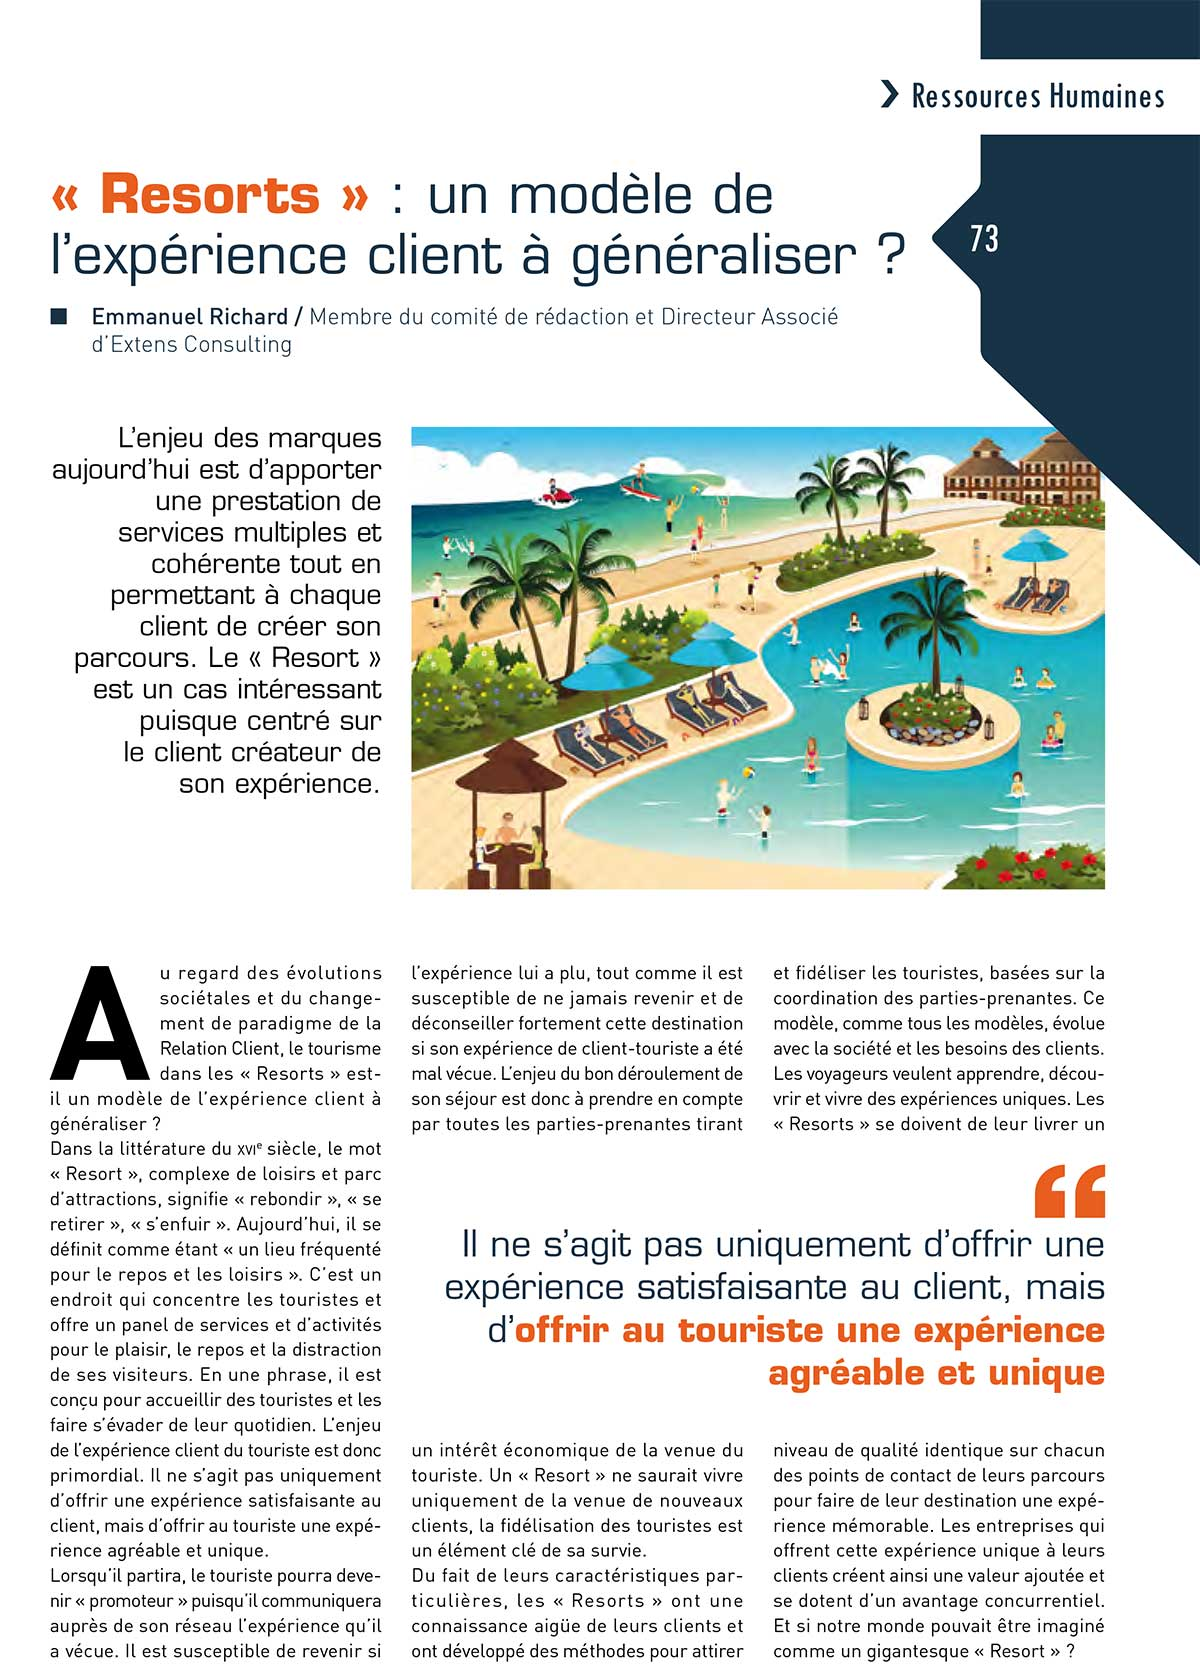 Article-AFRC-Resorts experience client a generaliser